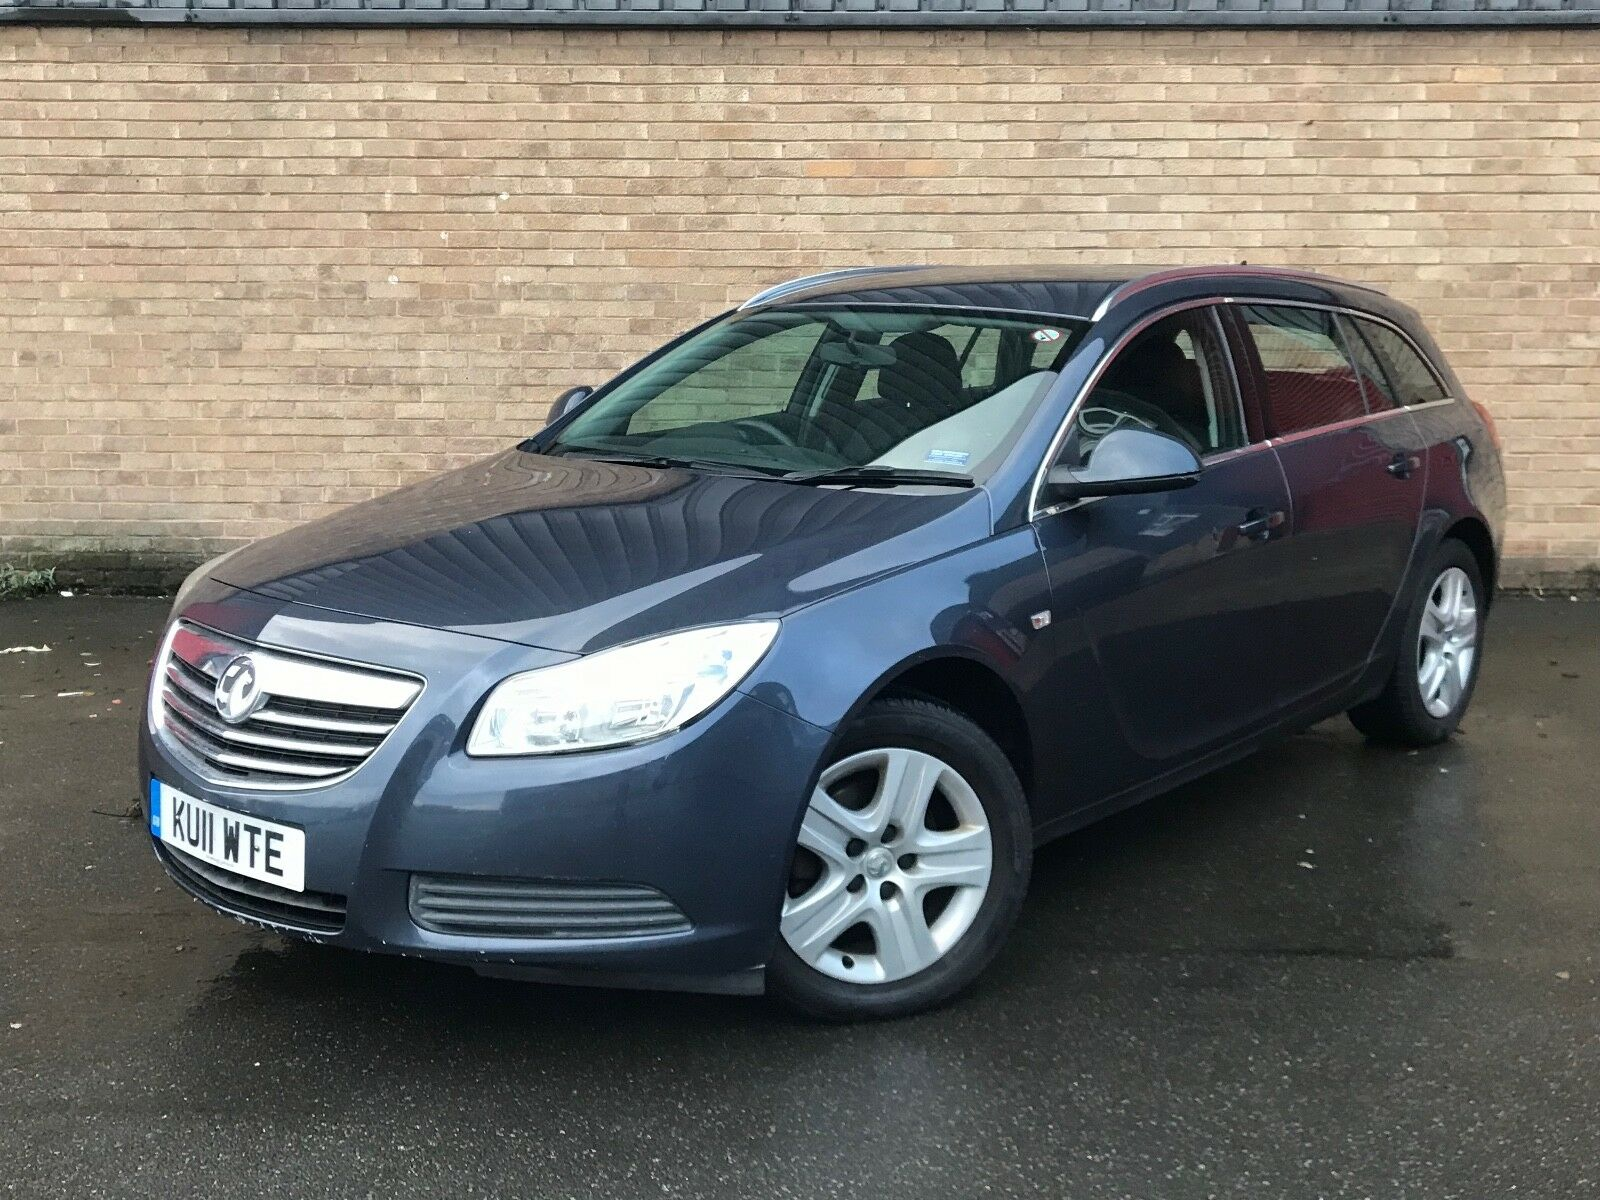 2011 11 reg vauxhall insignia exclusiv sat nav cdti diesel manual no reserve 3. Black Bedroom Furniture Sets. Home Design Ideas